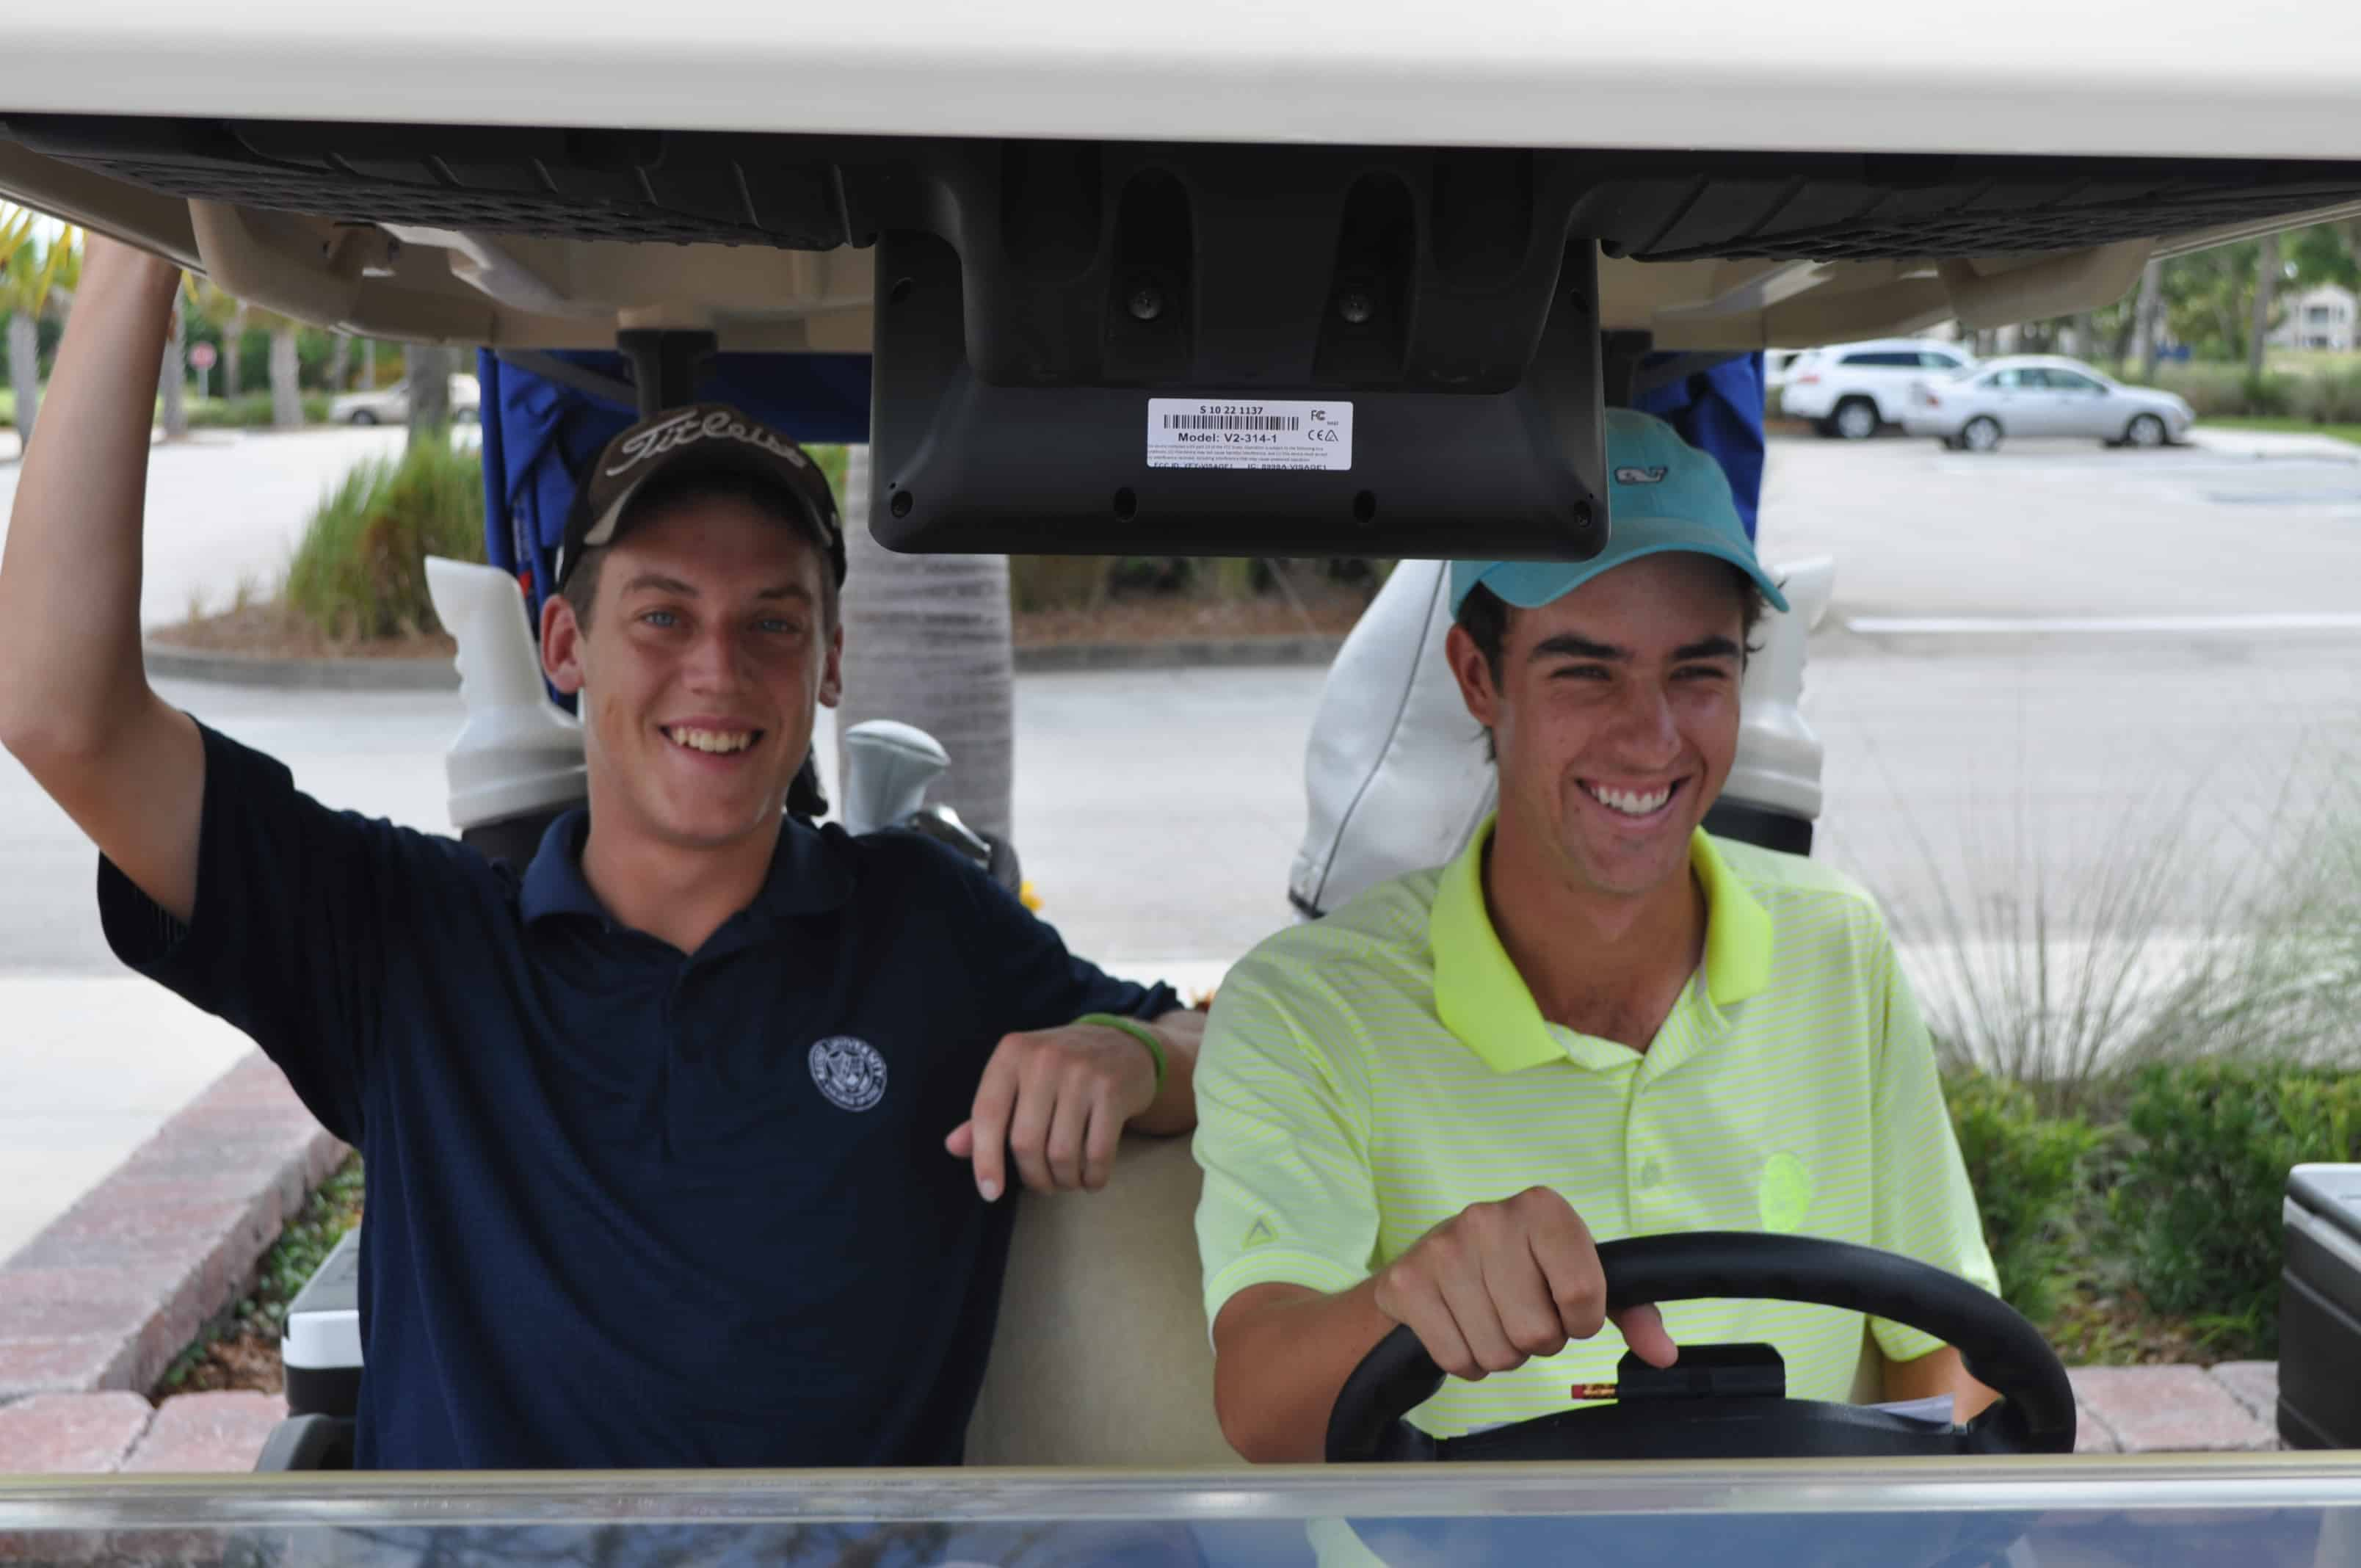 College of Golf and Sport Medicine Students Competed in the Stableford Golf Tournament